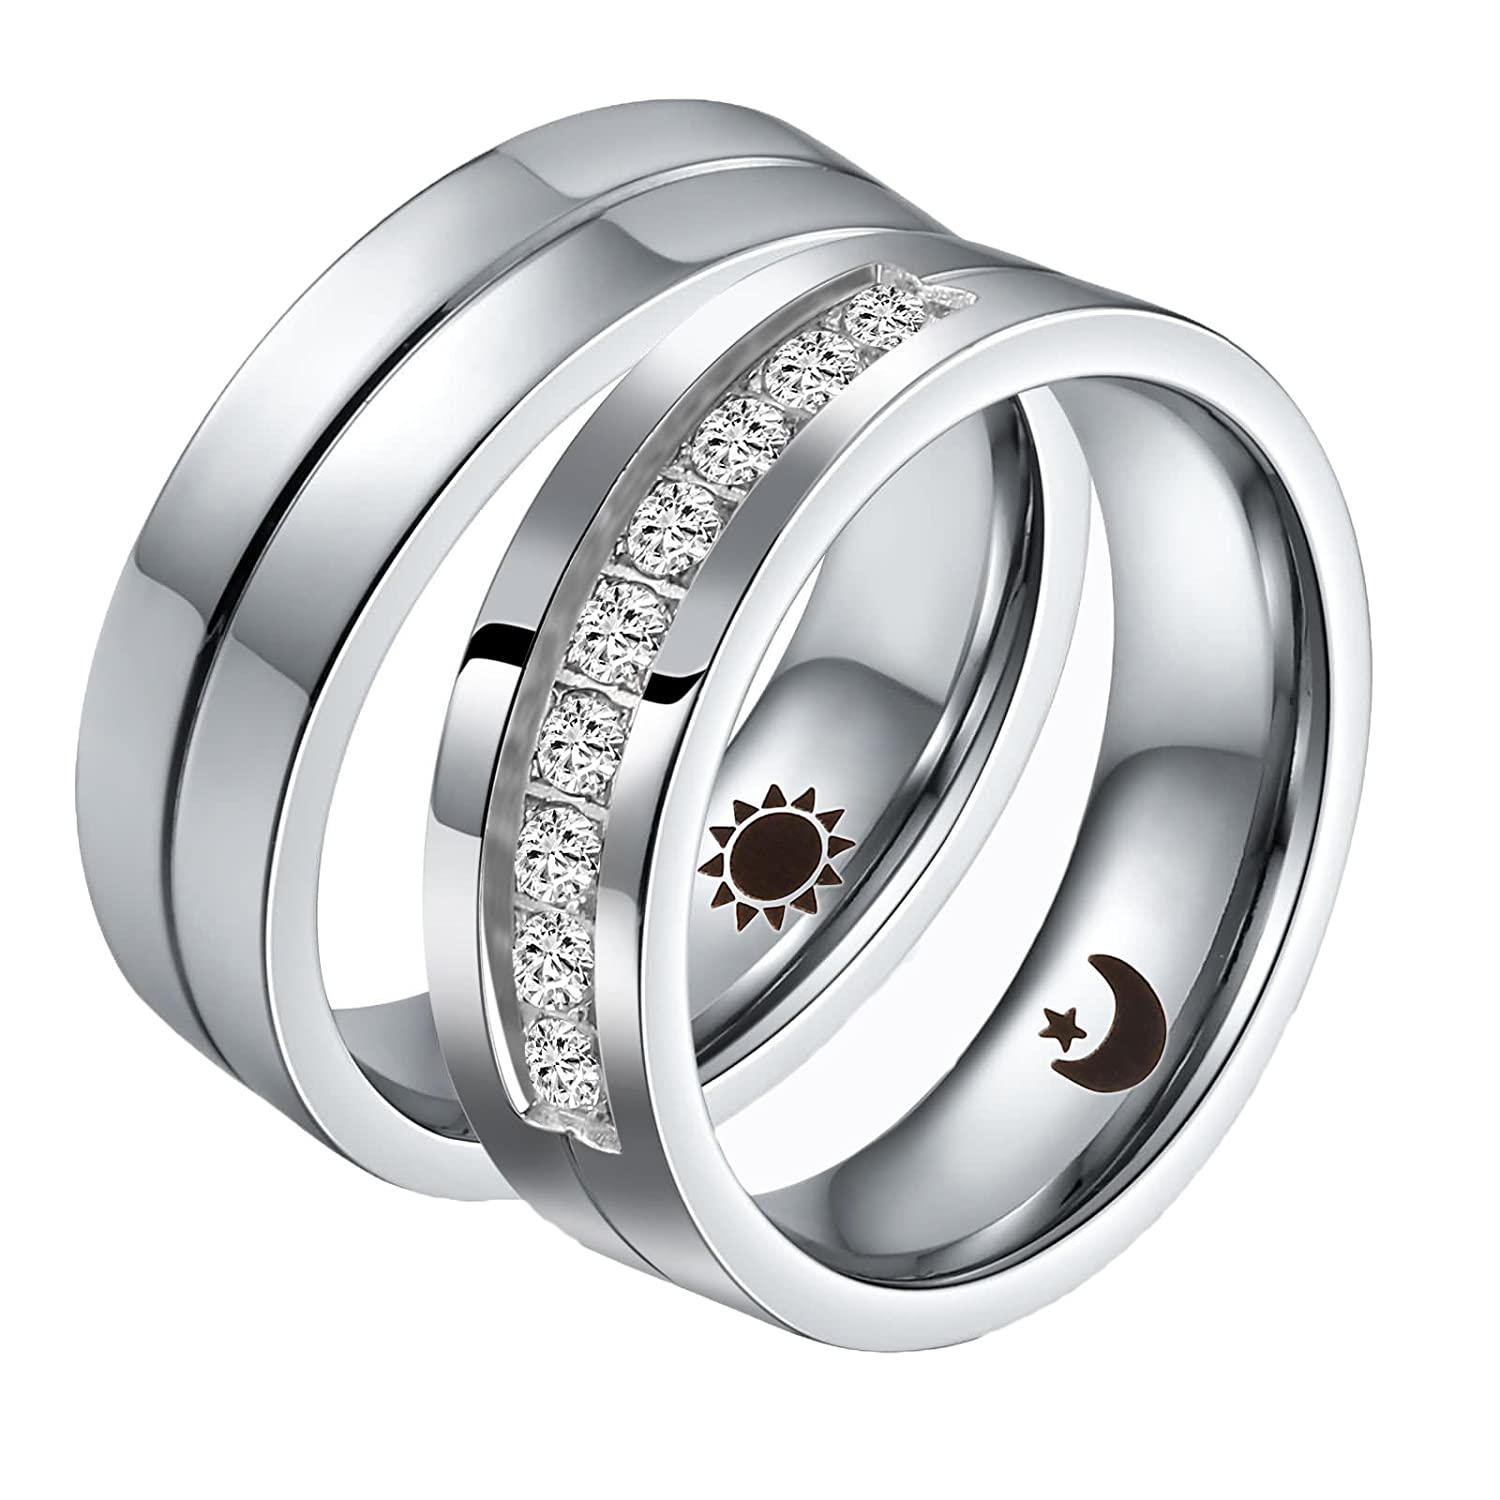 74327be4b3 Aeici 2 PCS Couple Rings Stainless Steel Wedding Rings for Men Women  Personalized Size 5 & Size 10: Aeici: Amazon.ca: Jewelry